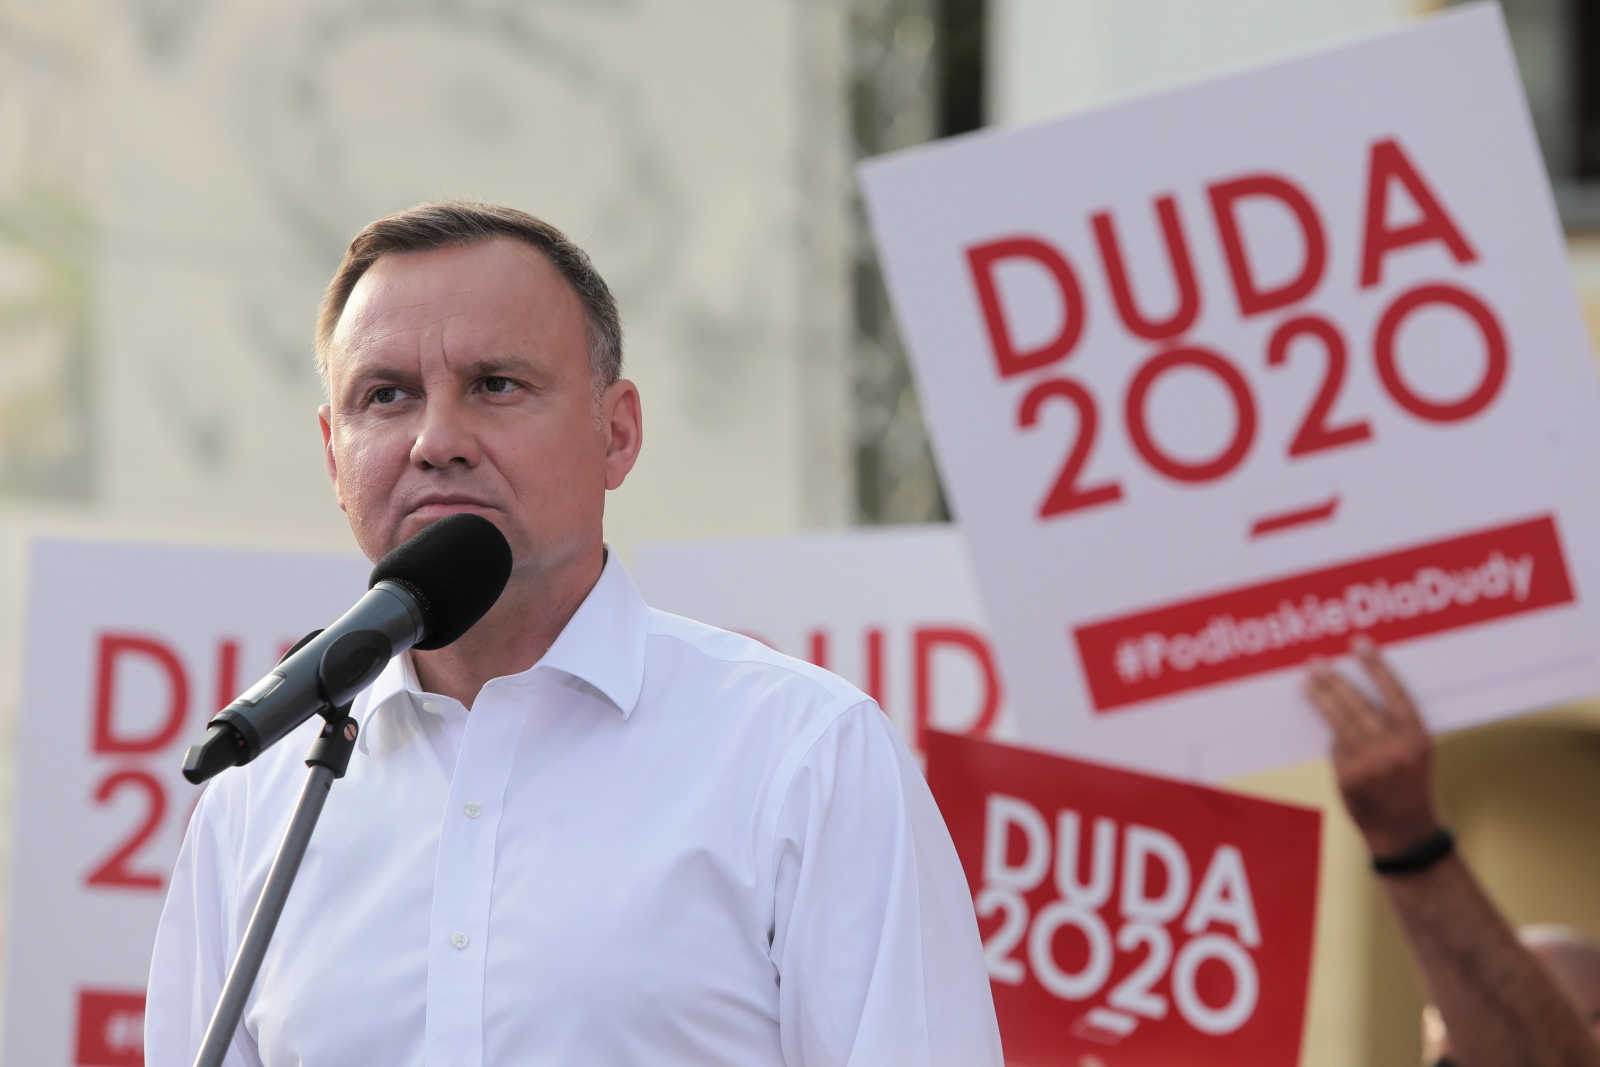 Polish President Andrzej Duda speaking to his supporters at a rally in Białystok, the Podlaskie province, eastern Poland, on Saturday, June 20.